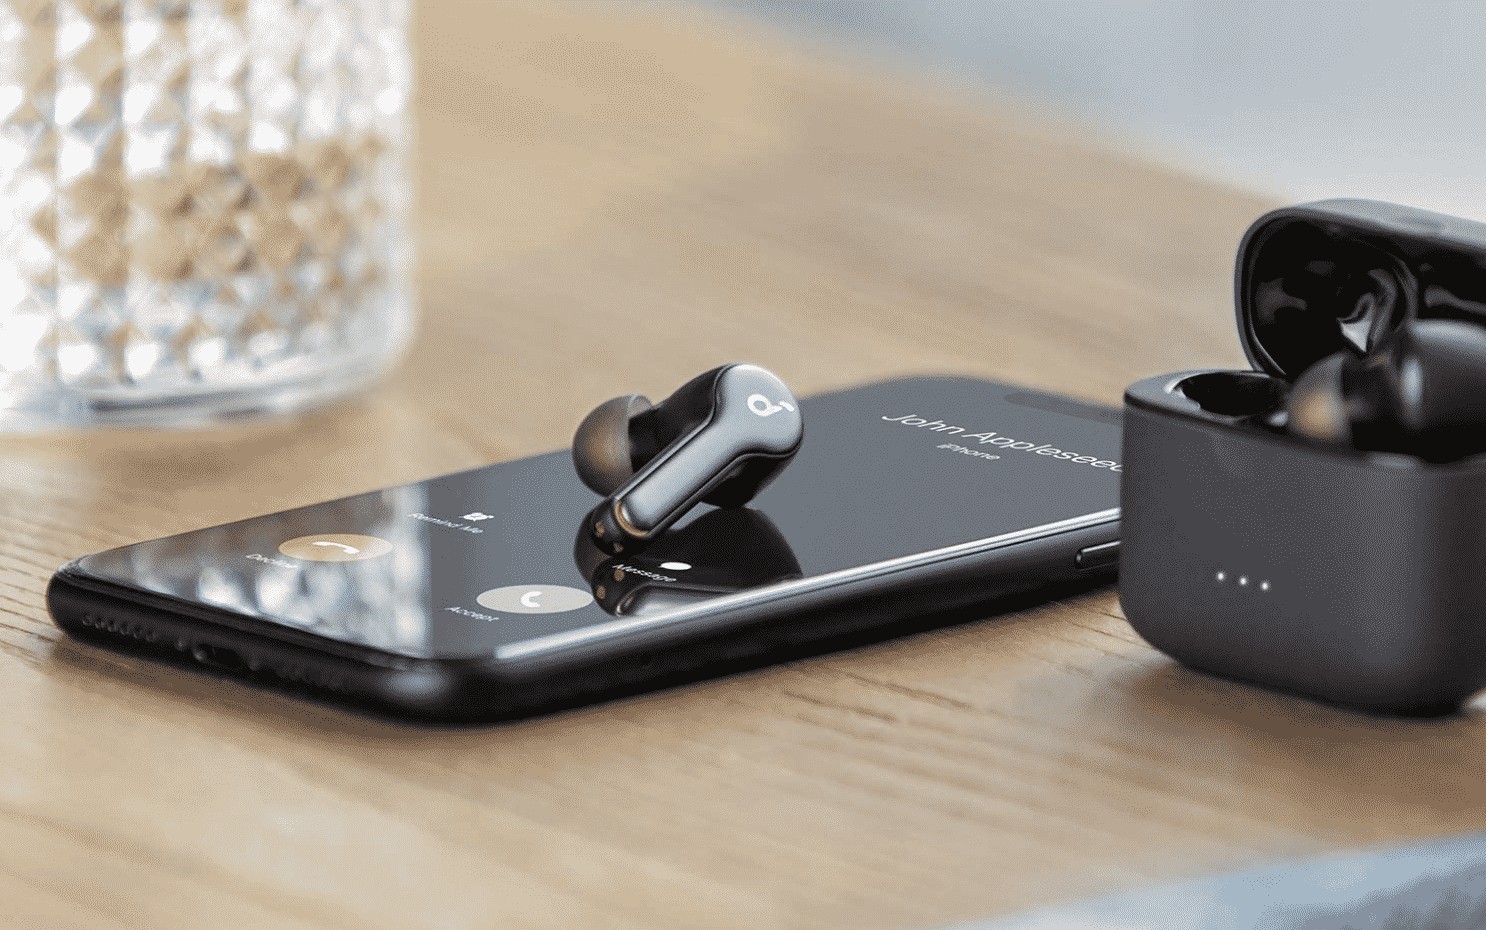 Get 40% Off on the Anker Soundcore Liberty Air 2 Earbuds